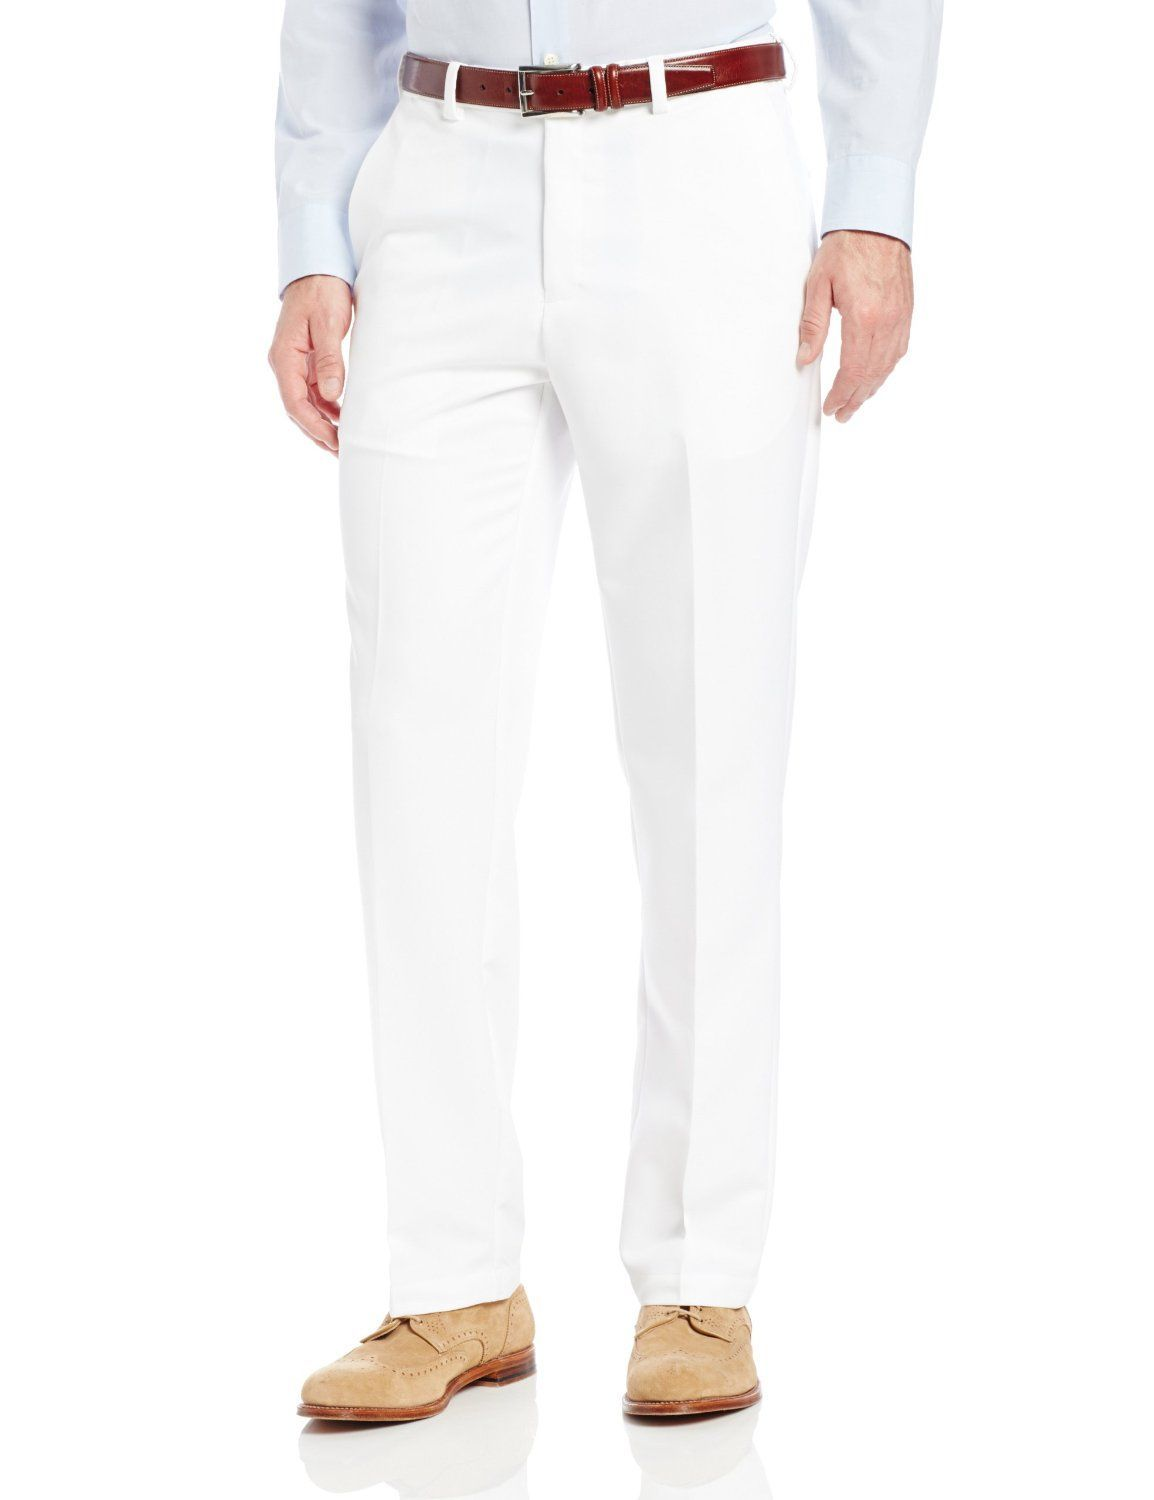 Mens White Dress Pants sqpxGY3q